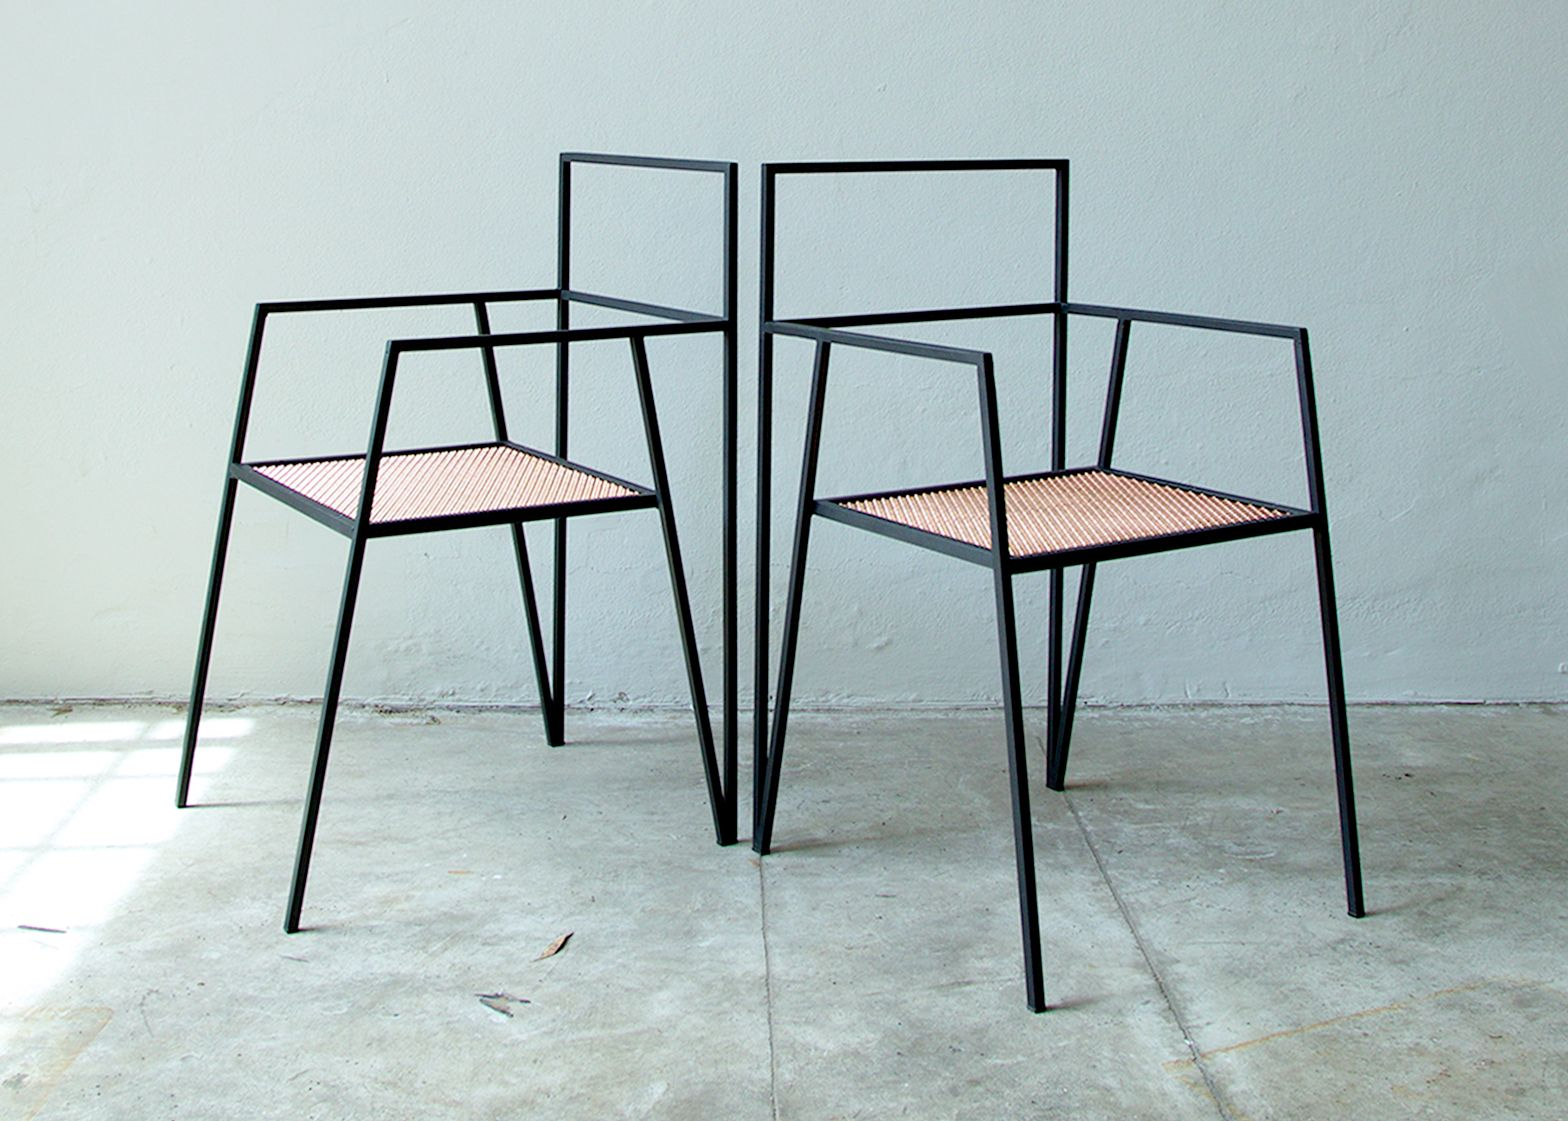 minimal furniture. alpina furniture by ries is made from minimal steel shapes n